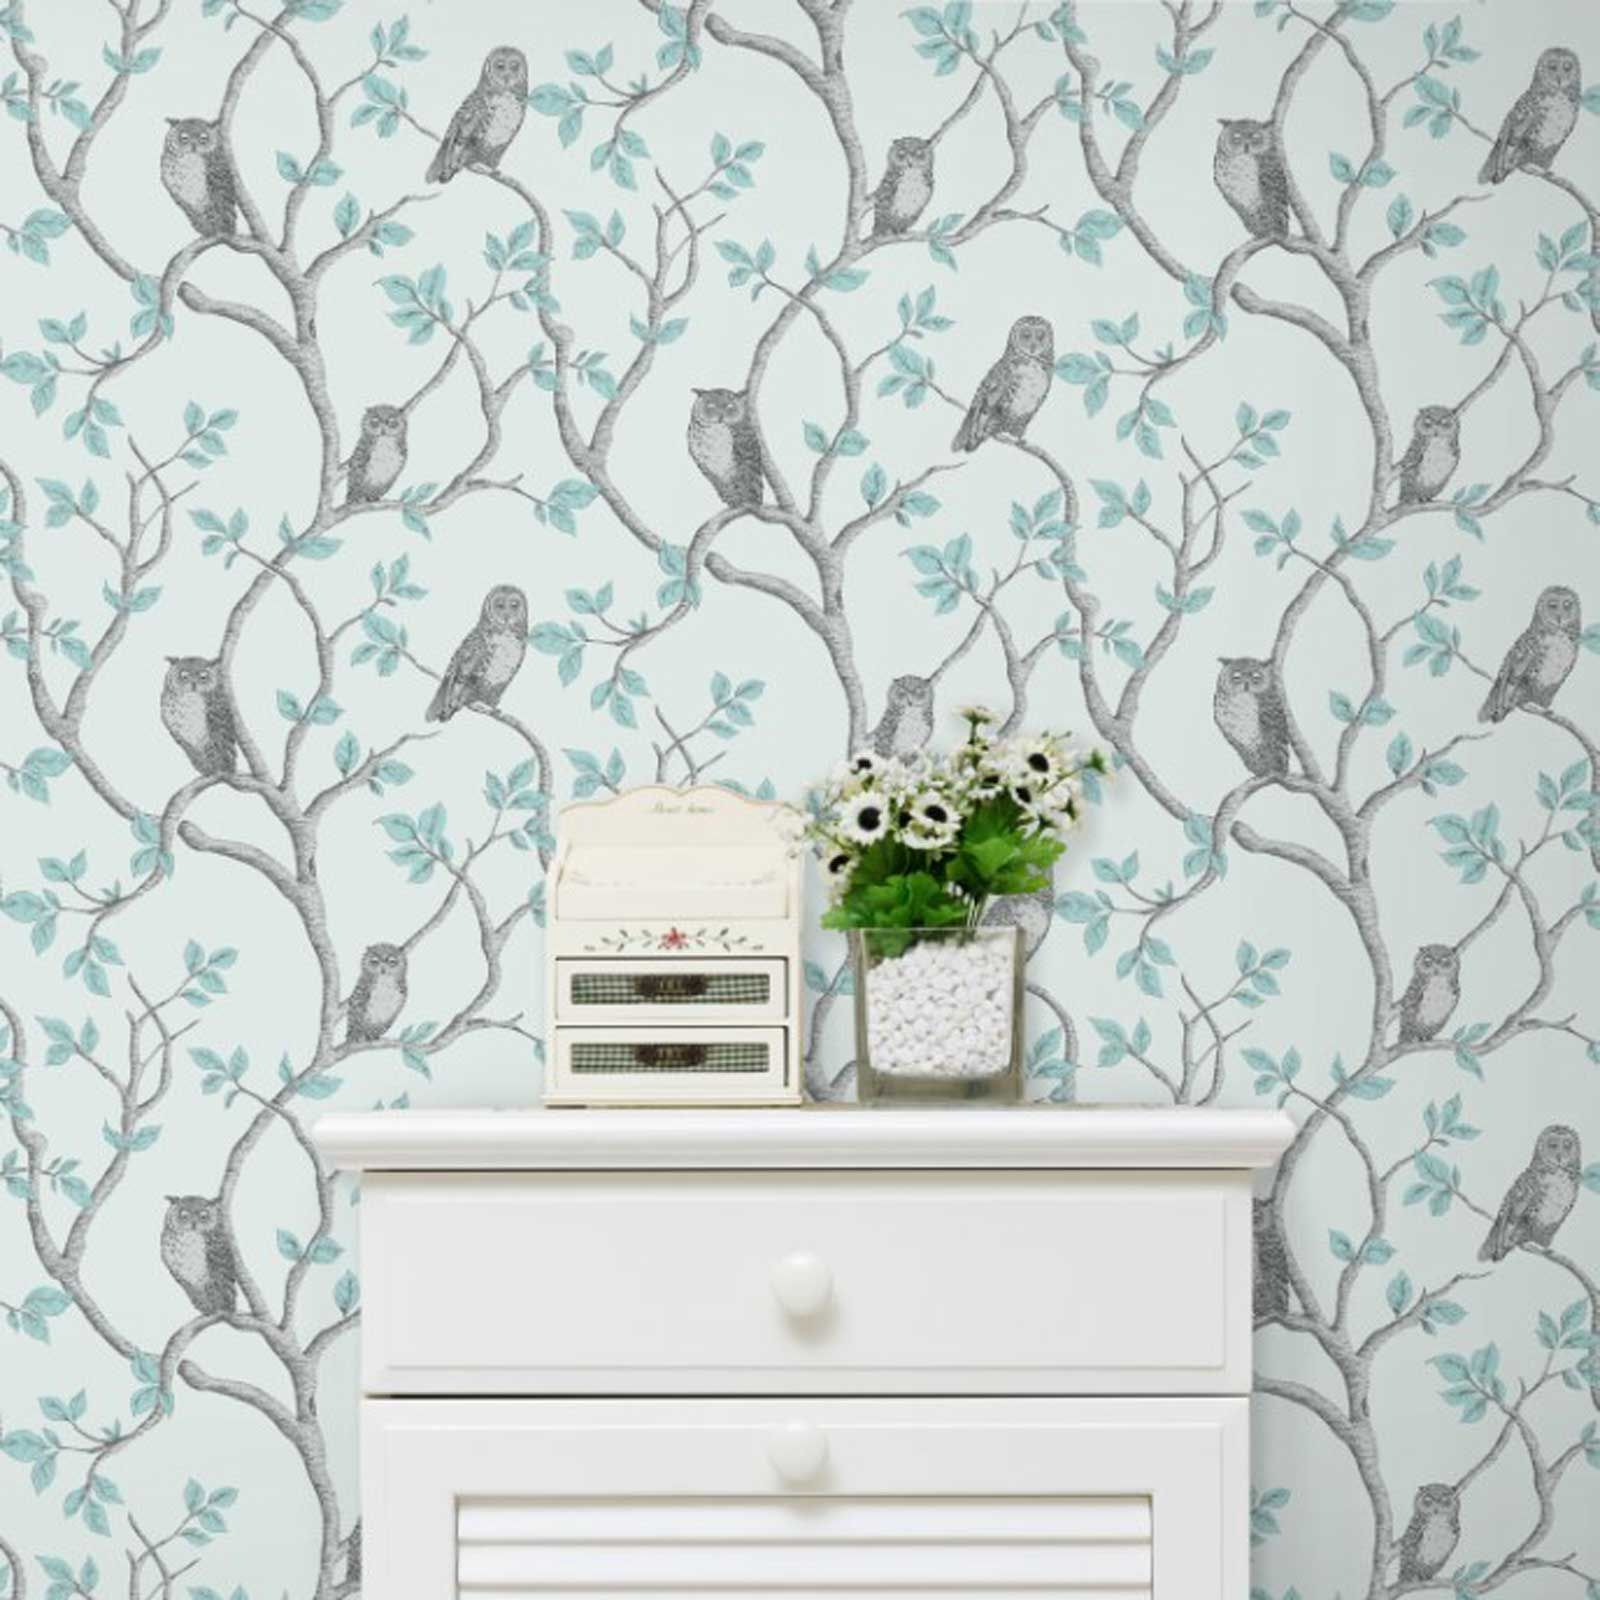 FINE DÉCOR / GRANDECO TEAL / DUCK EGG WALLPAPER